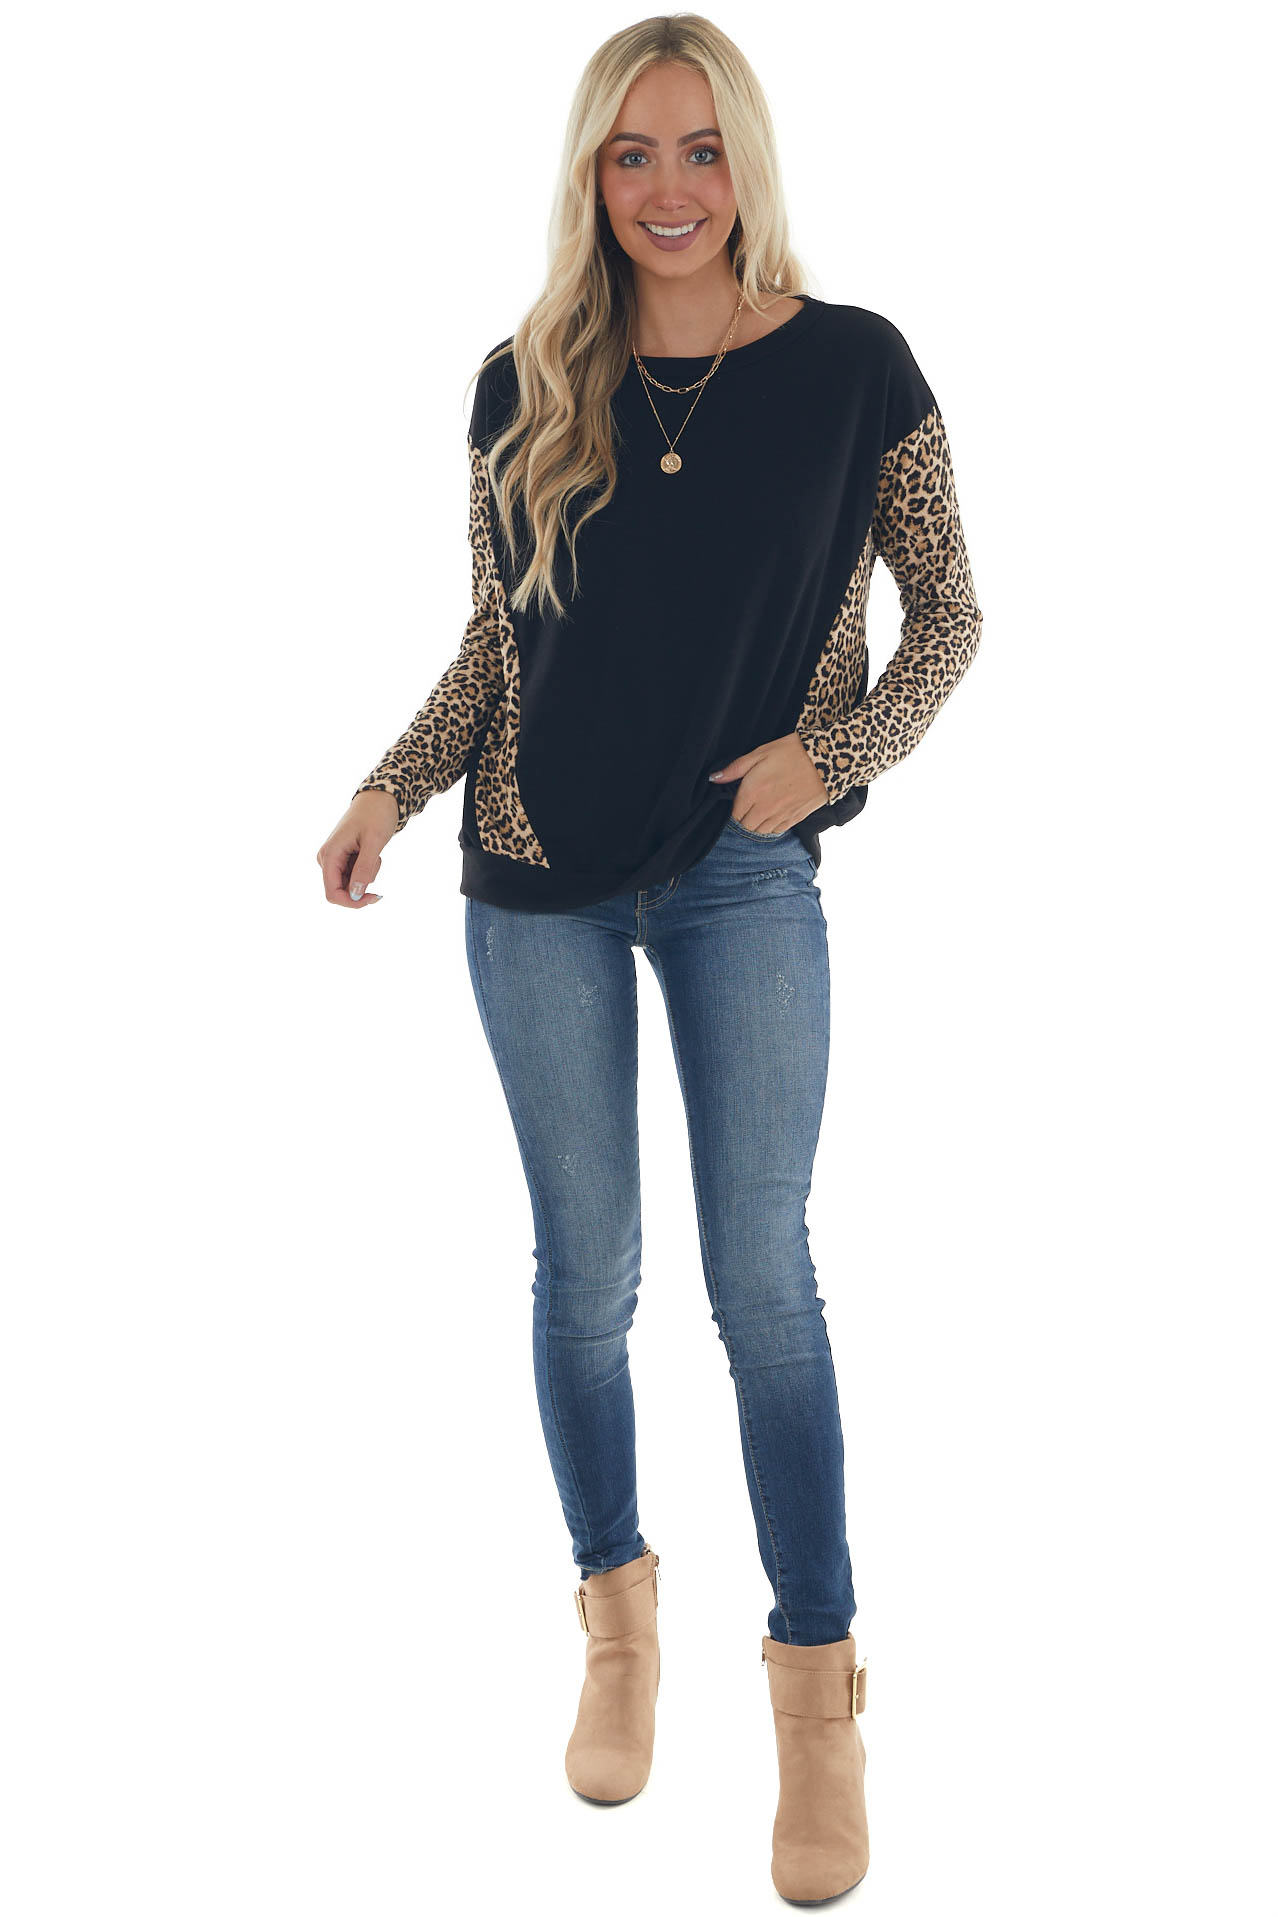 Black and Leopard Print Long Sleeve Knit Top